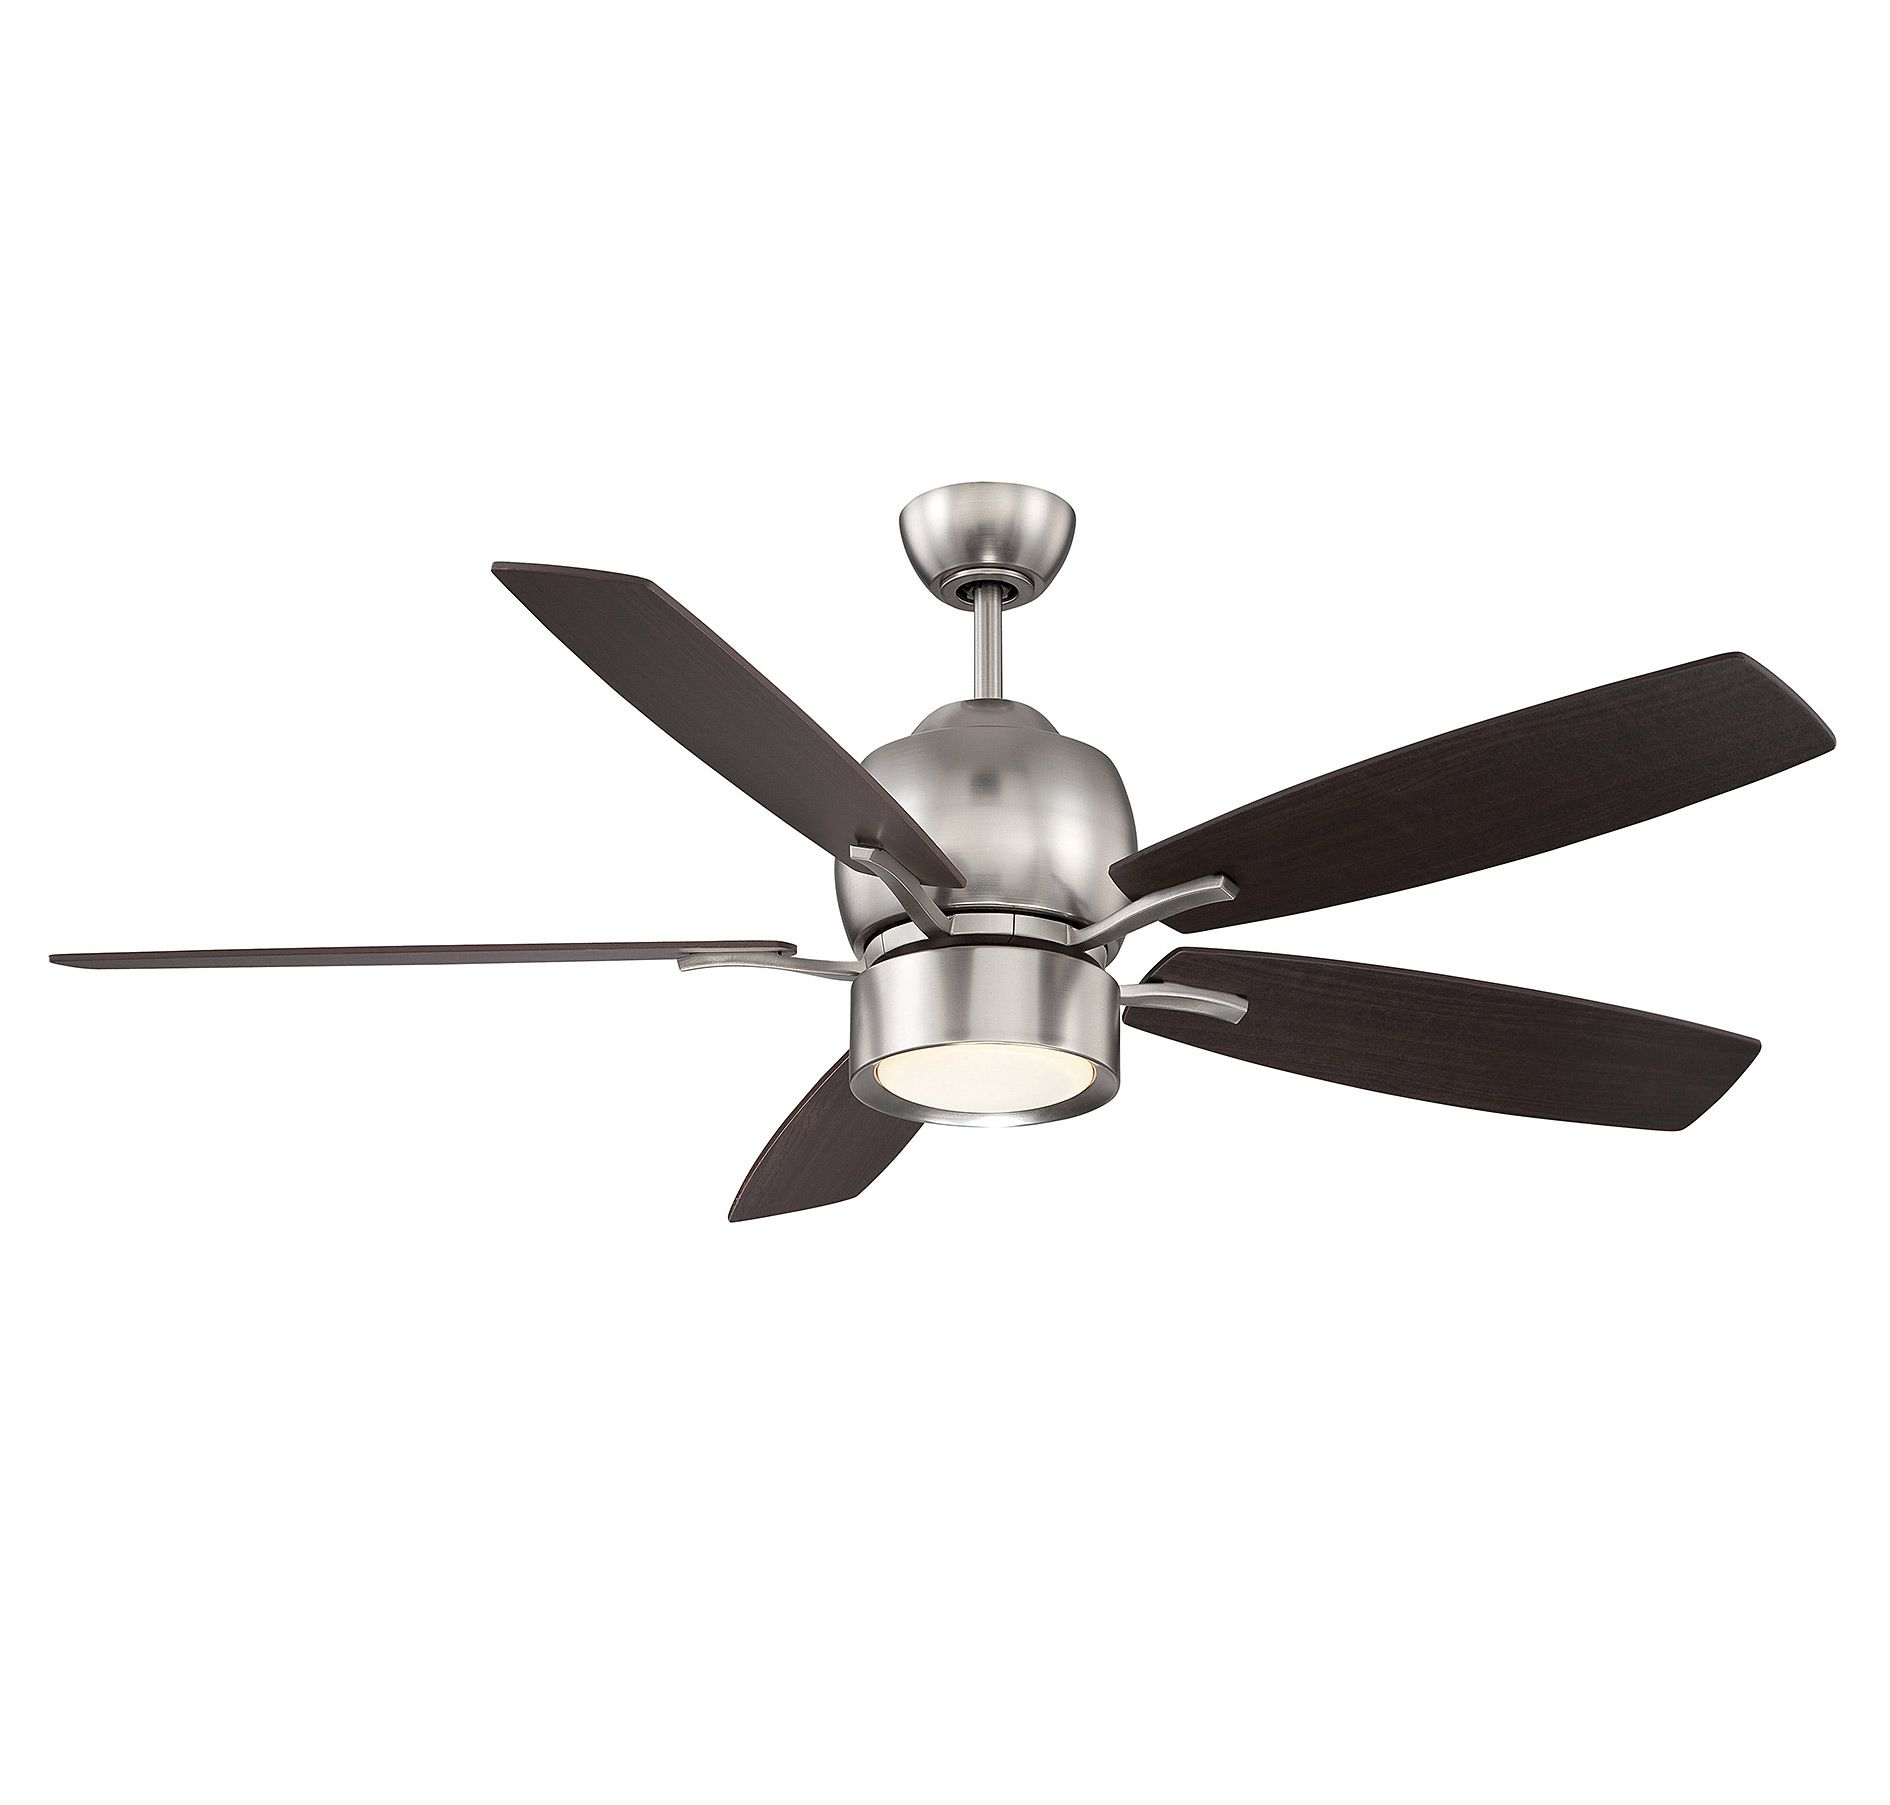 Girard Ceiling Fan With Light By Savoy House 52 120 5wa 13 With Images Ceiling Fan Ceiling Fan With Light